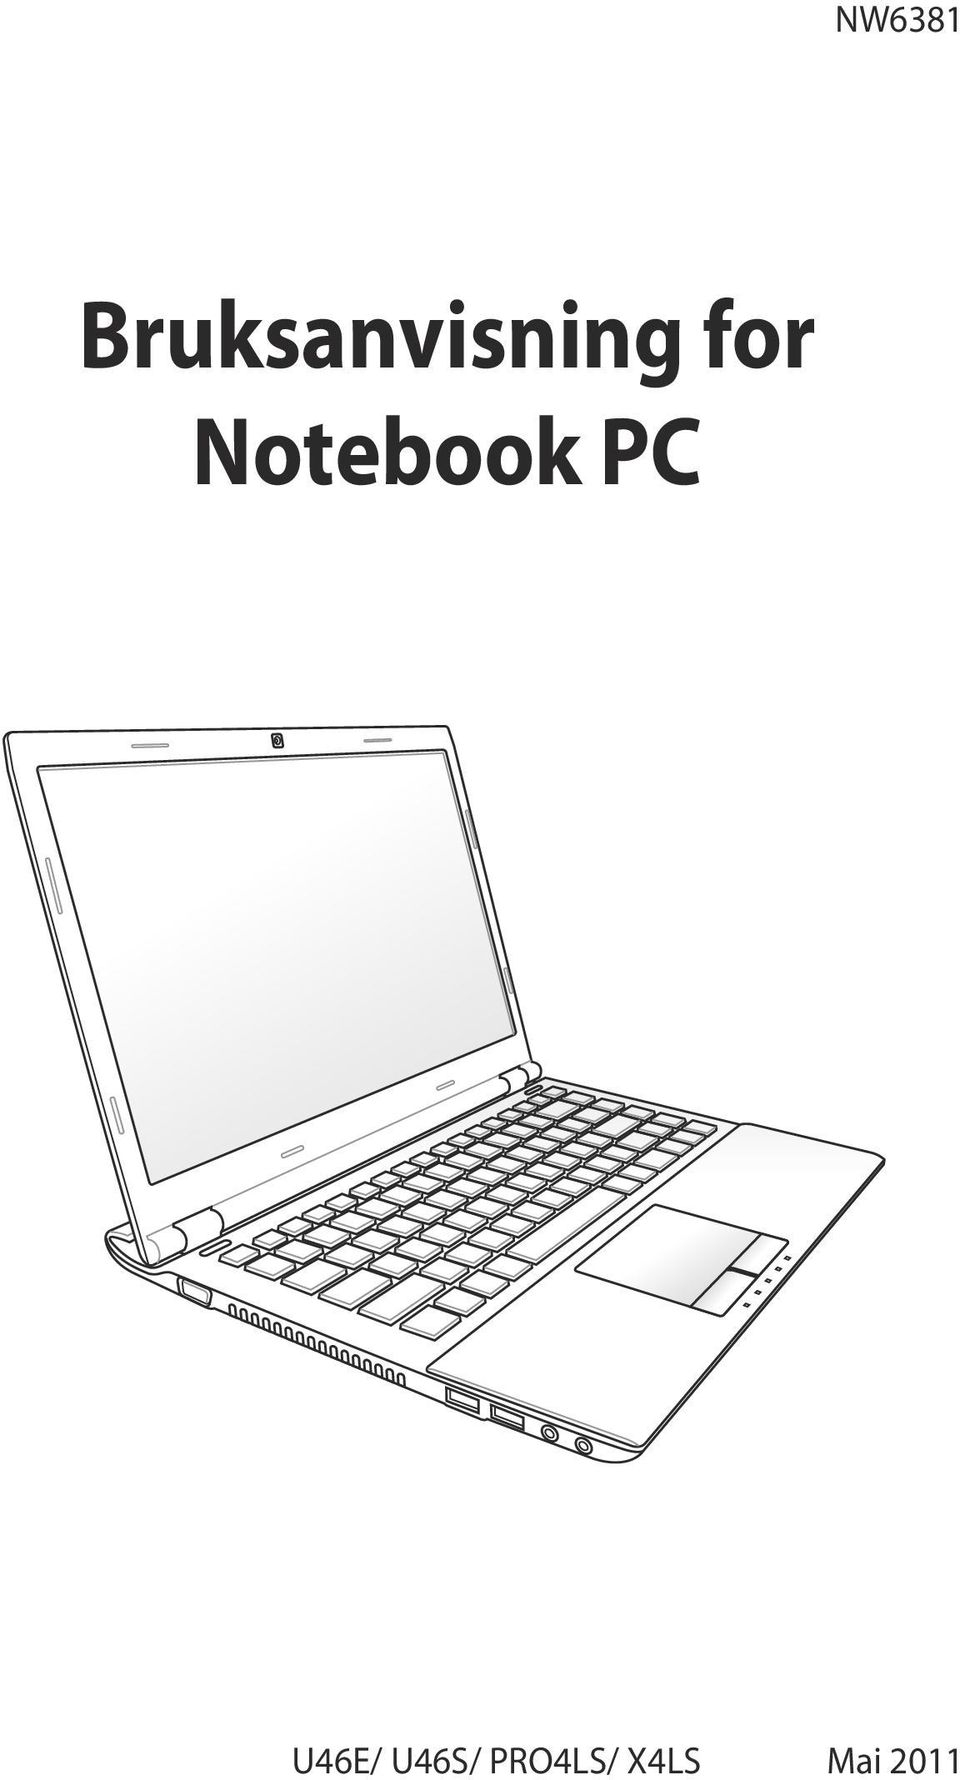 for Notebook PC